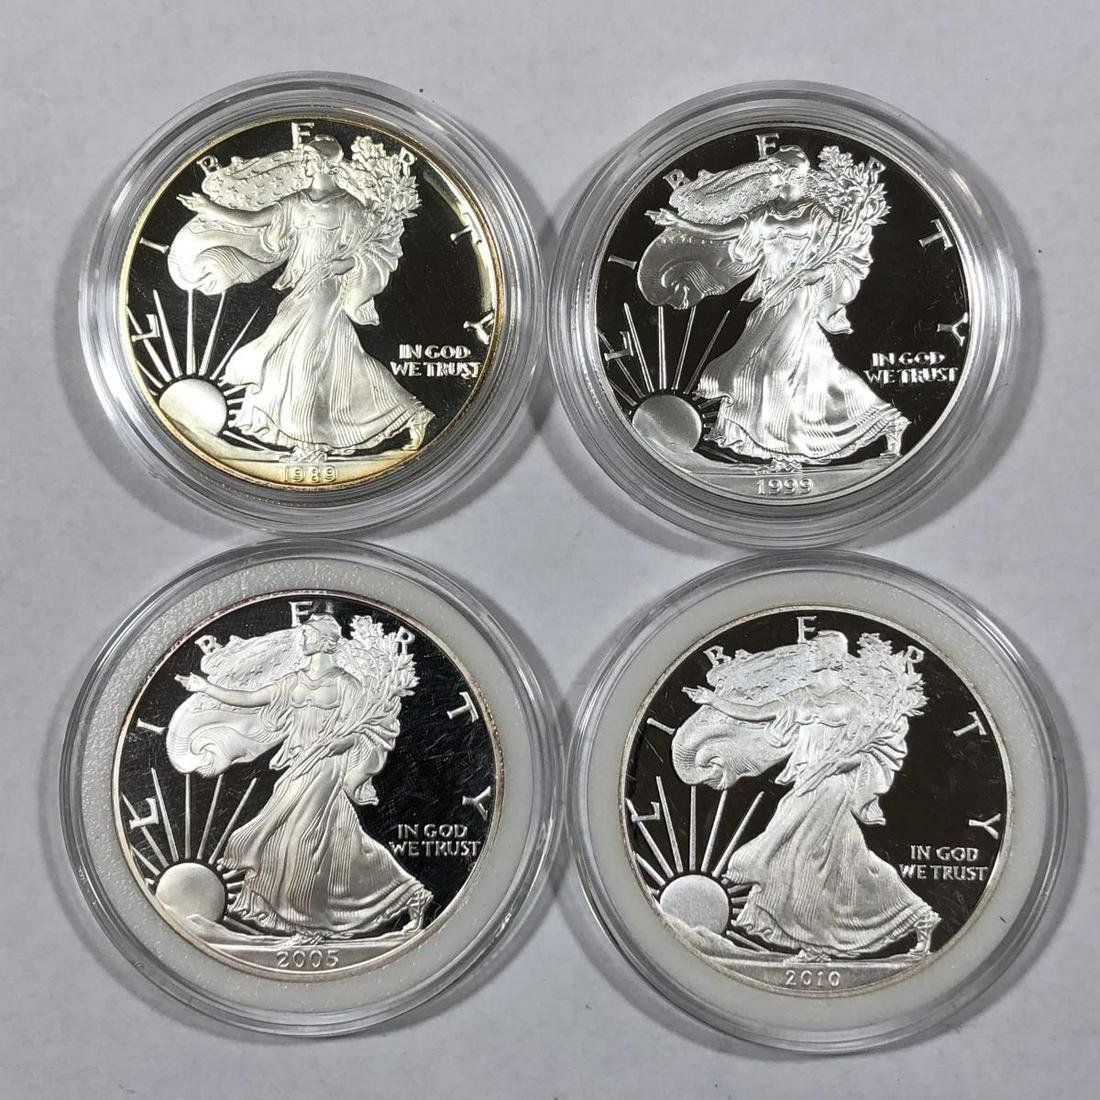 Lot of 4 Proof Silver Eagles in Capsules 1989-2010